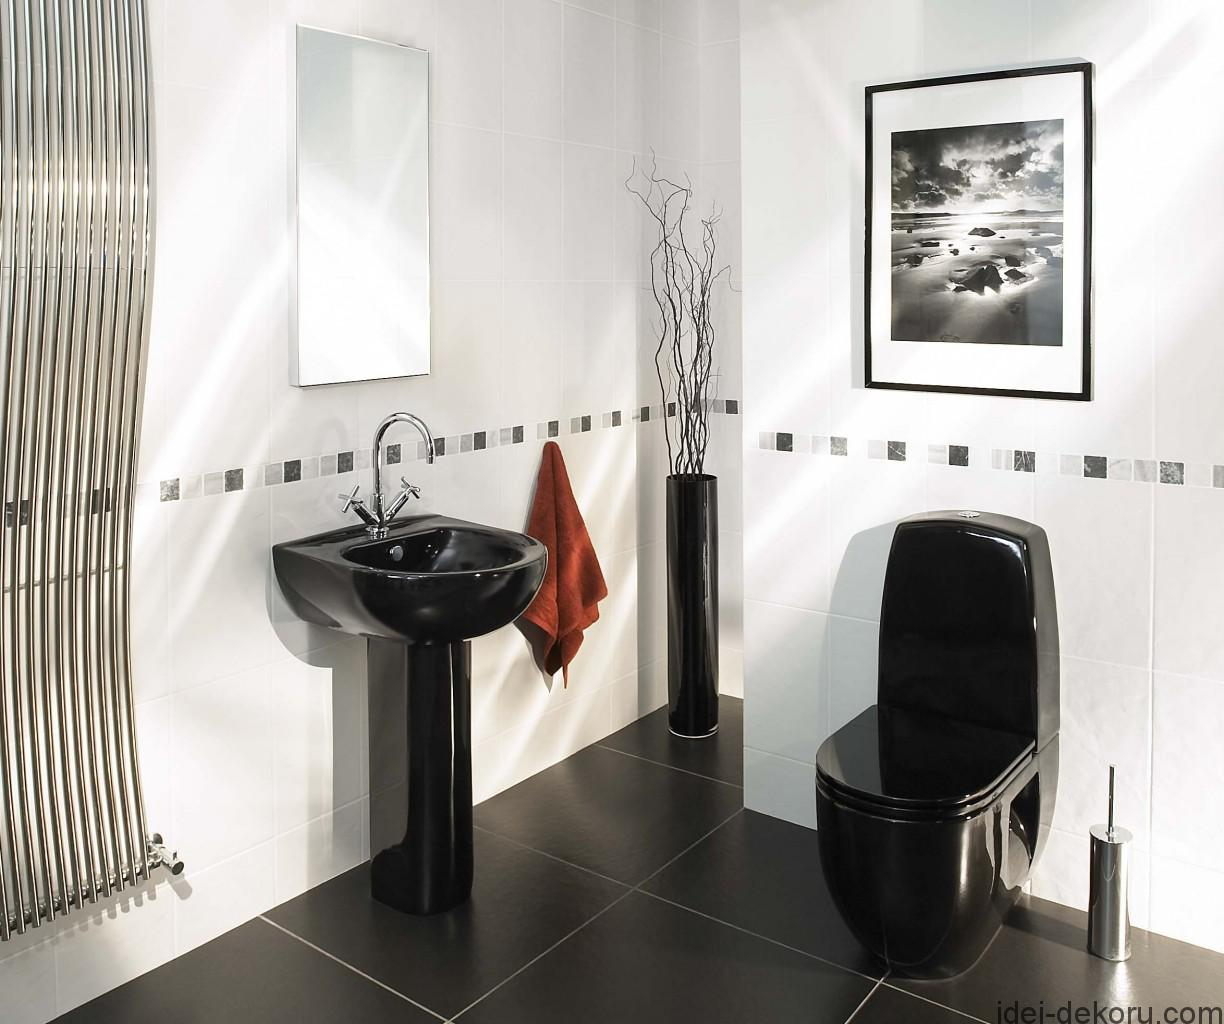 breathtaking-decorating-ideas-bathroom-ideas-with-black-toilet-and-also-black-washbasin-for-decorating-ideas-for-bathrooms-and-home-decor-ideas-1224x1024